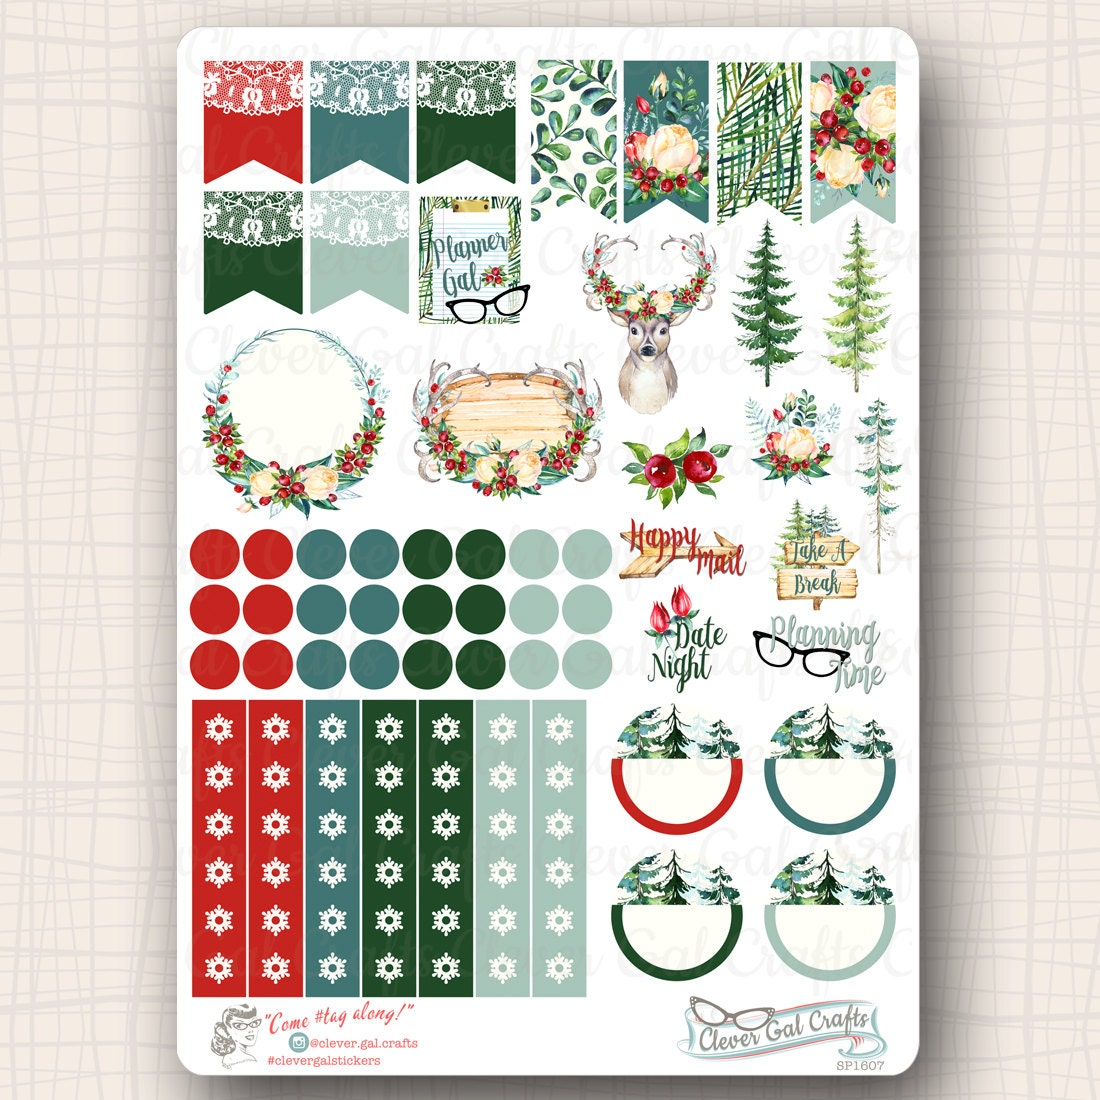 decorative planner stickers woodland noel doo dads 58 stickers total sp1607 from. Black Bedroom Furniture Sets. Home Design Ideas